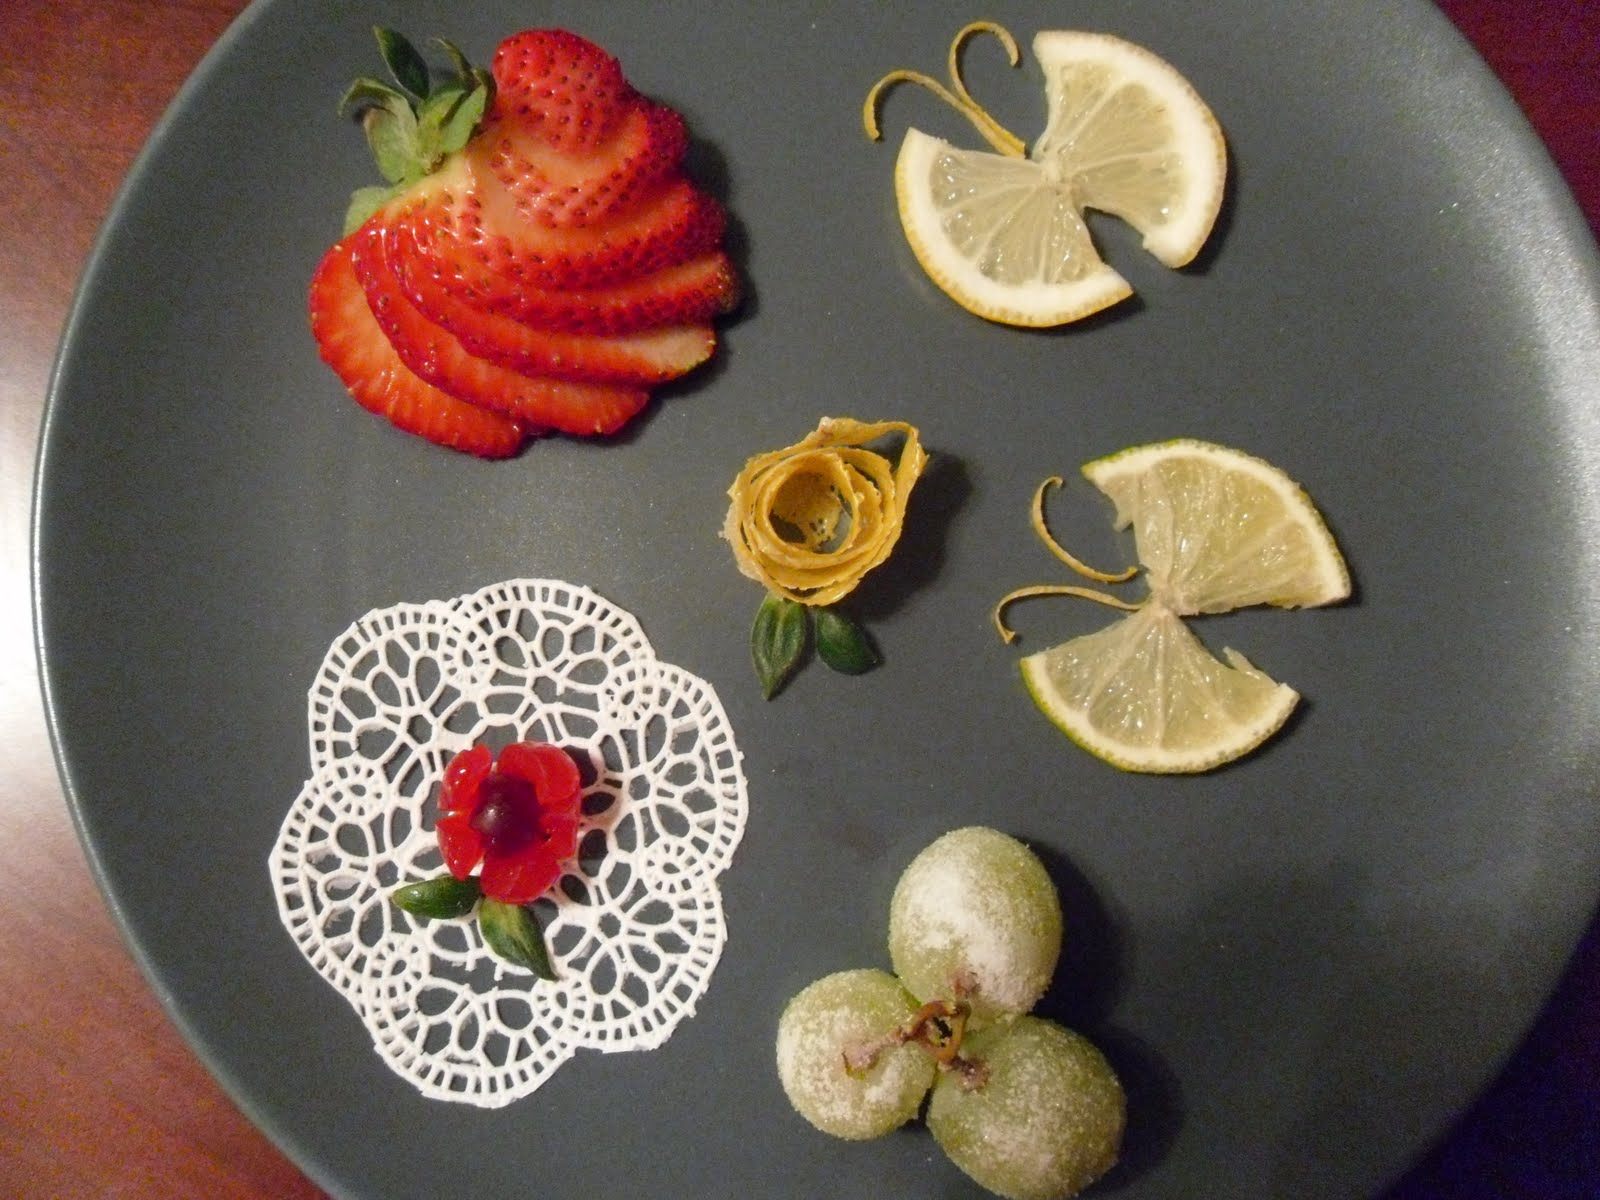 Garnishes For Dinner Plates http://cakeideas.blogspot.com/2011/04/simple-dessert-garnishes.html